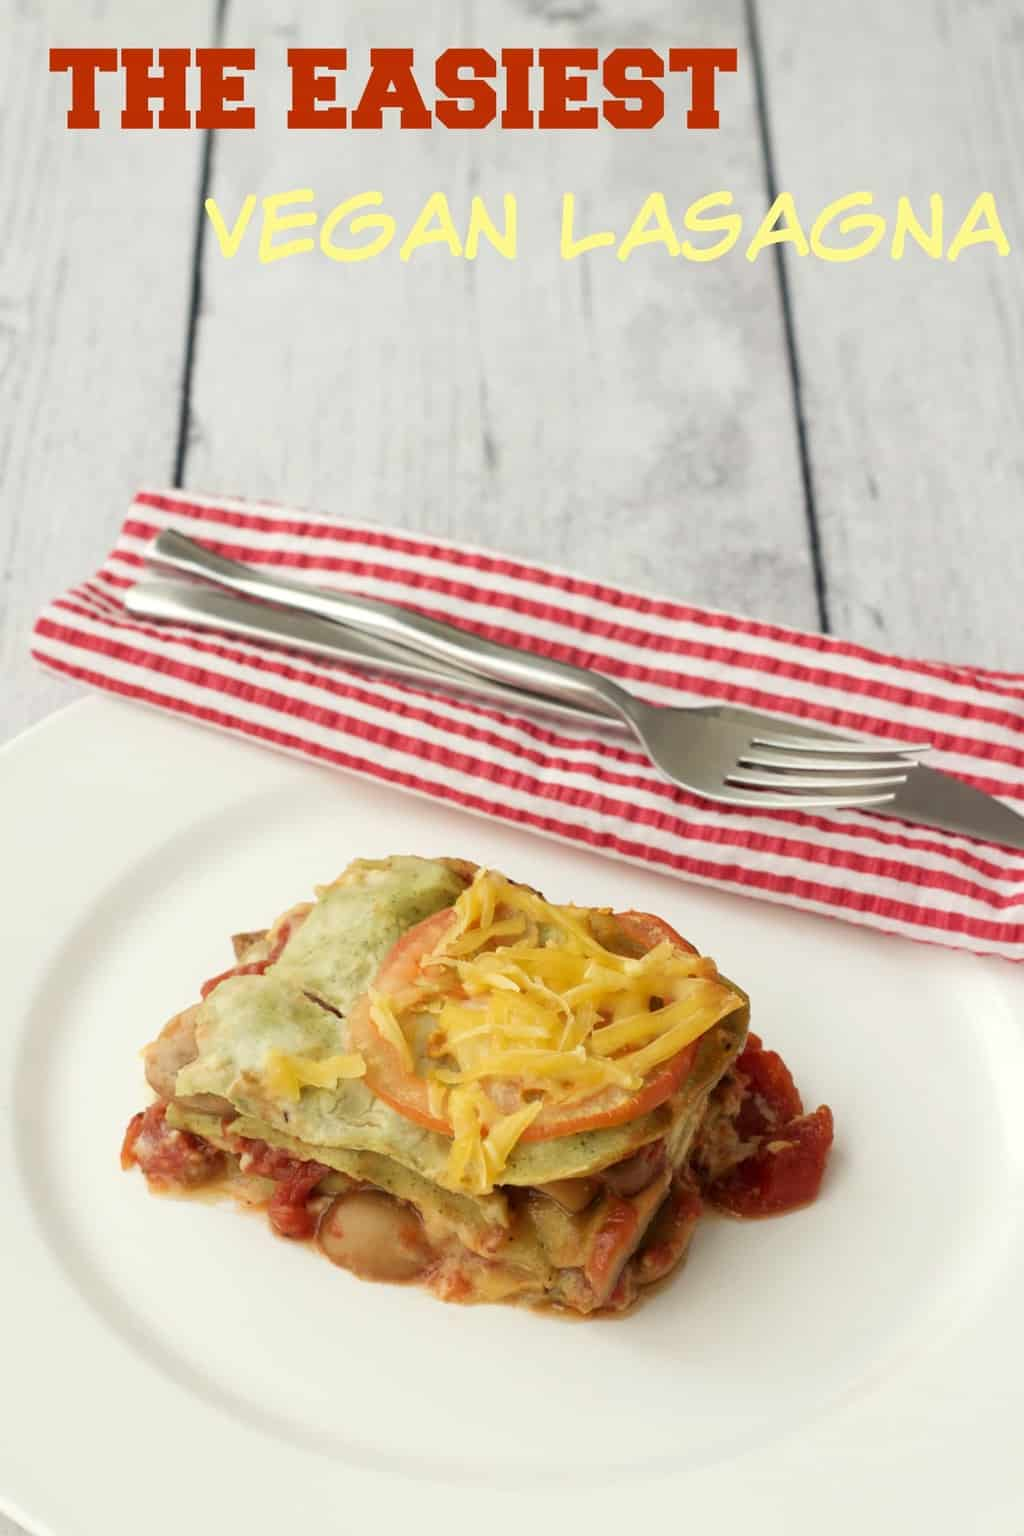 The Easiest Vegan Lasagna #vegan #lovingitvegan #lasagna #entree #dairyfree